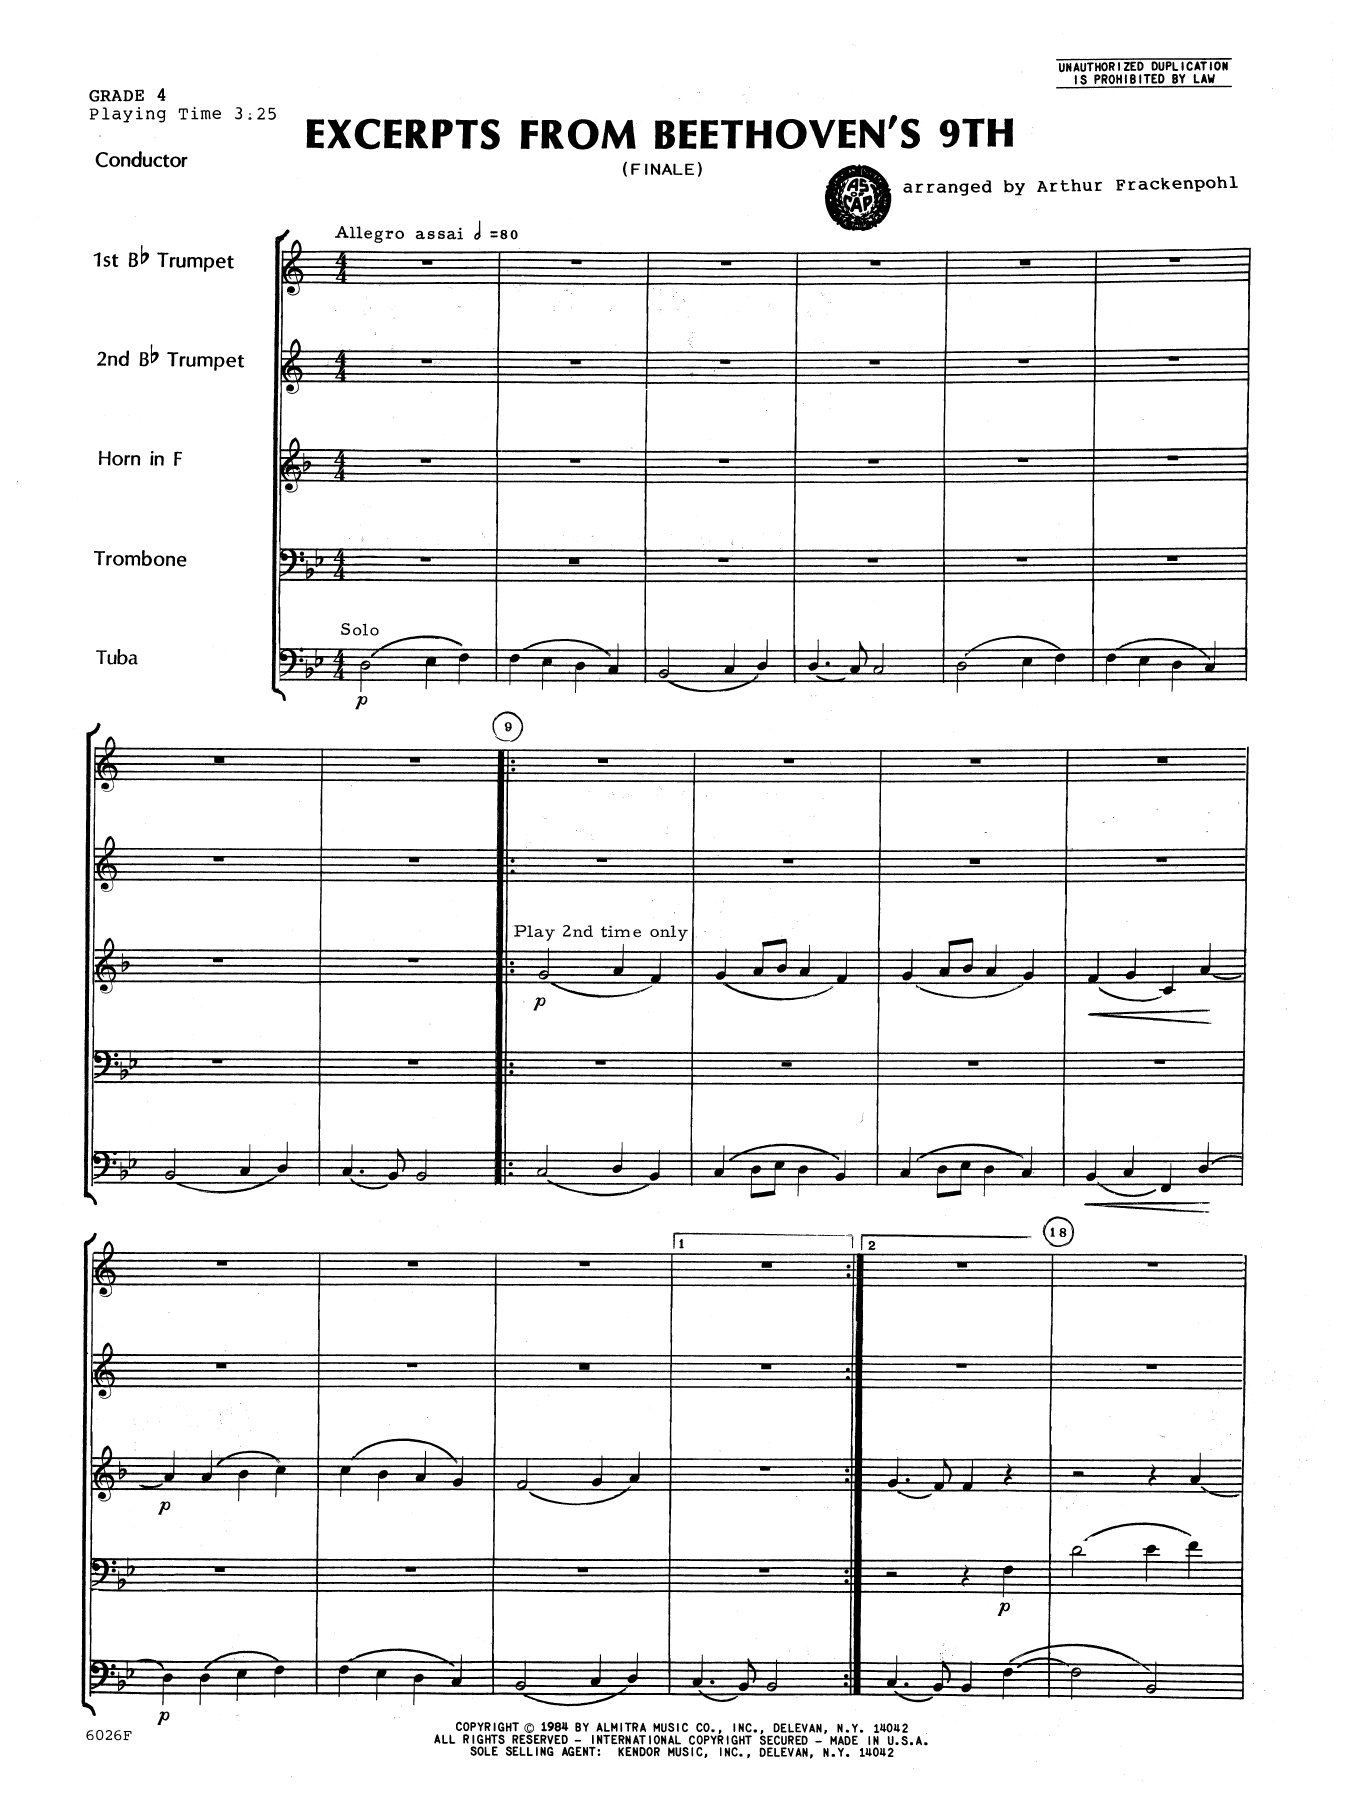 Excerpts From Beethoven's 9th (COMPLETE) sheet music for brass quintet by Arthur Frackenpohl